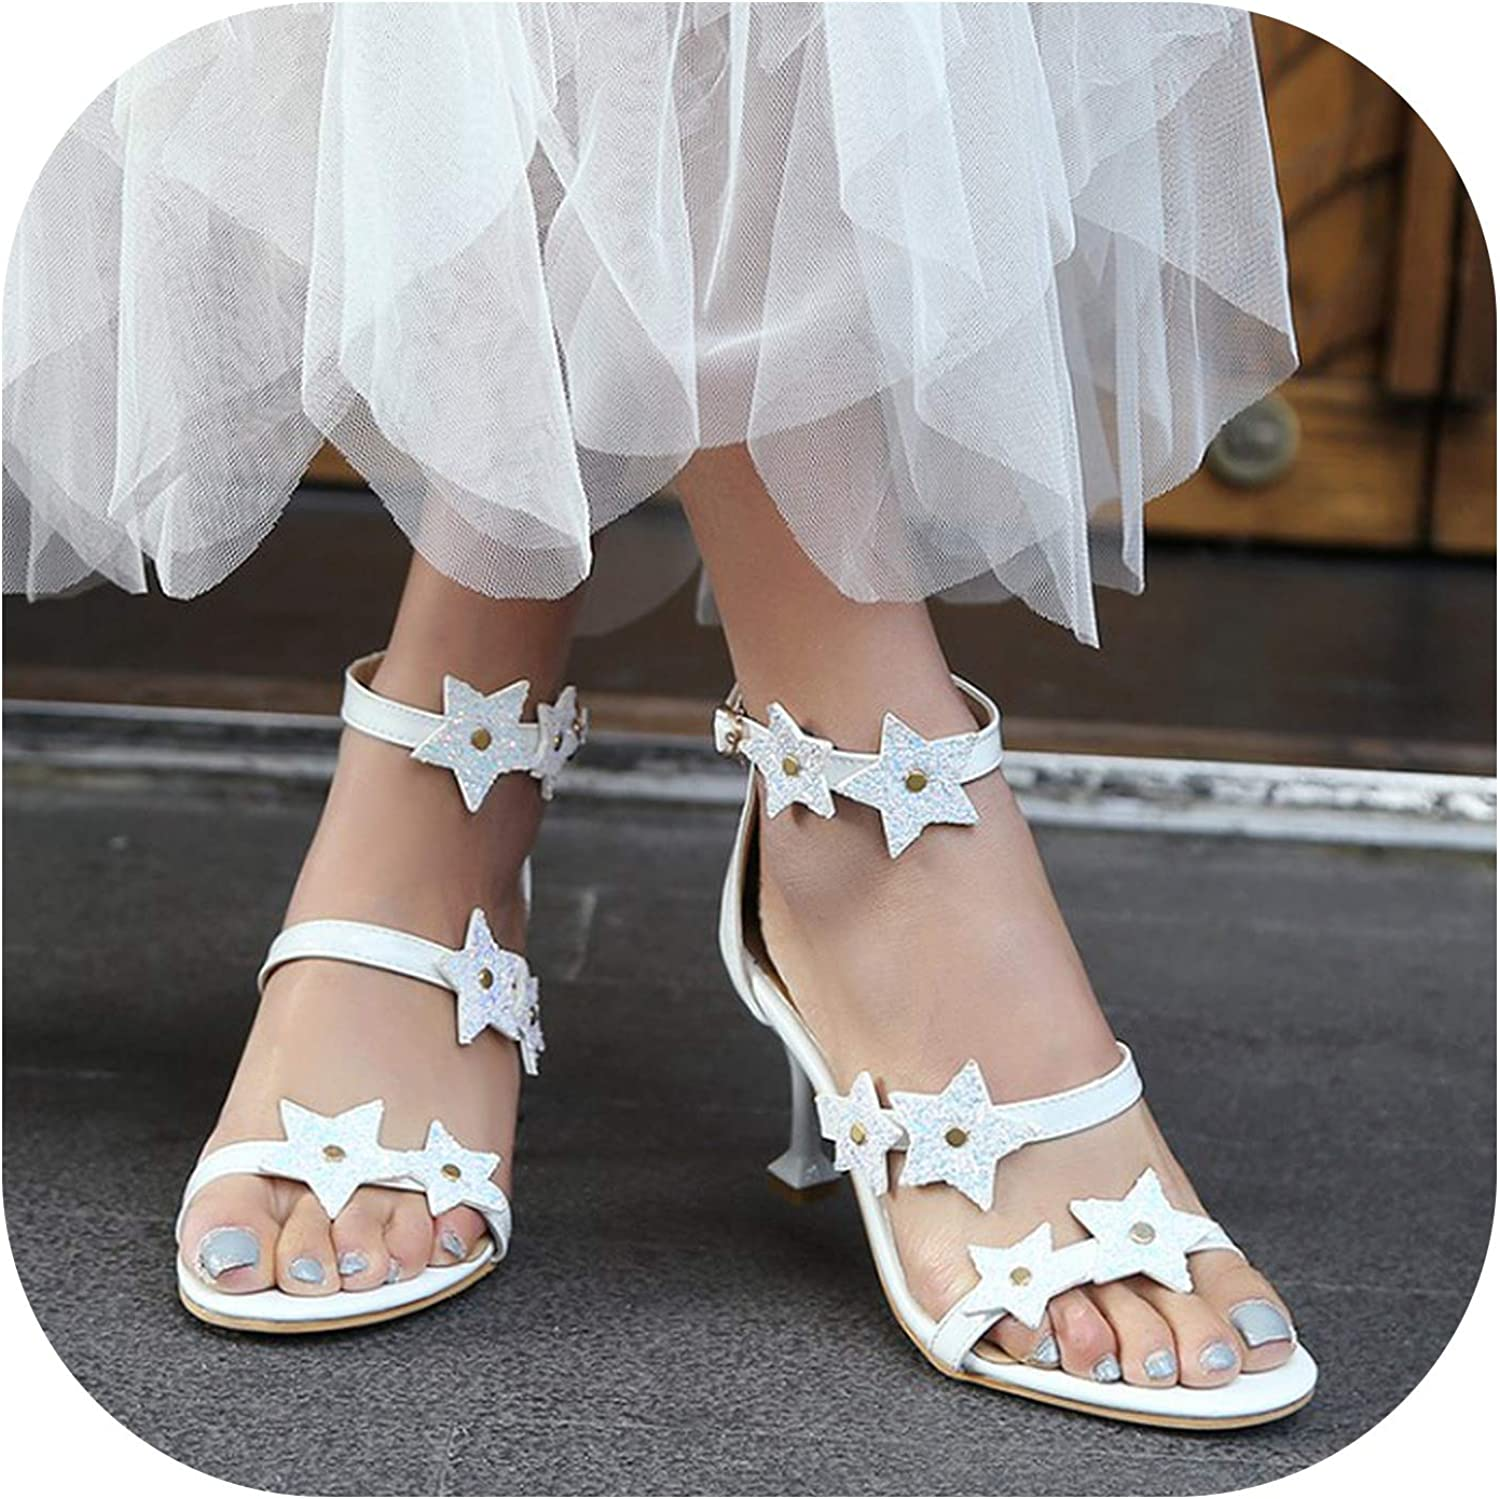 Women's Sandals Summer Open Toe Fine Heel Star Sequin Black High Heel Women's shoes